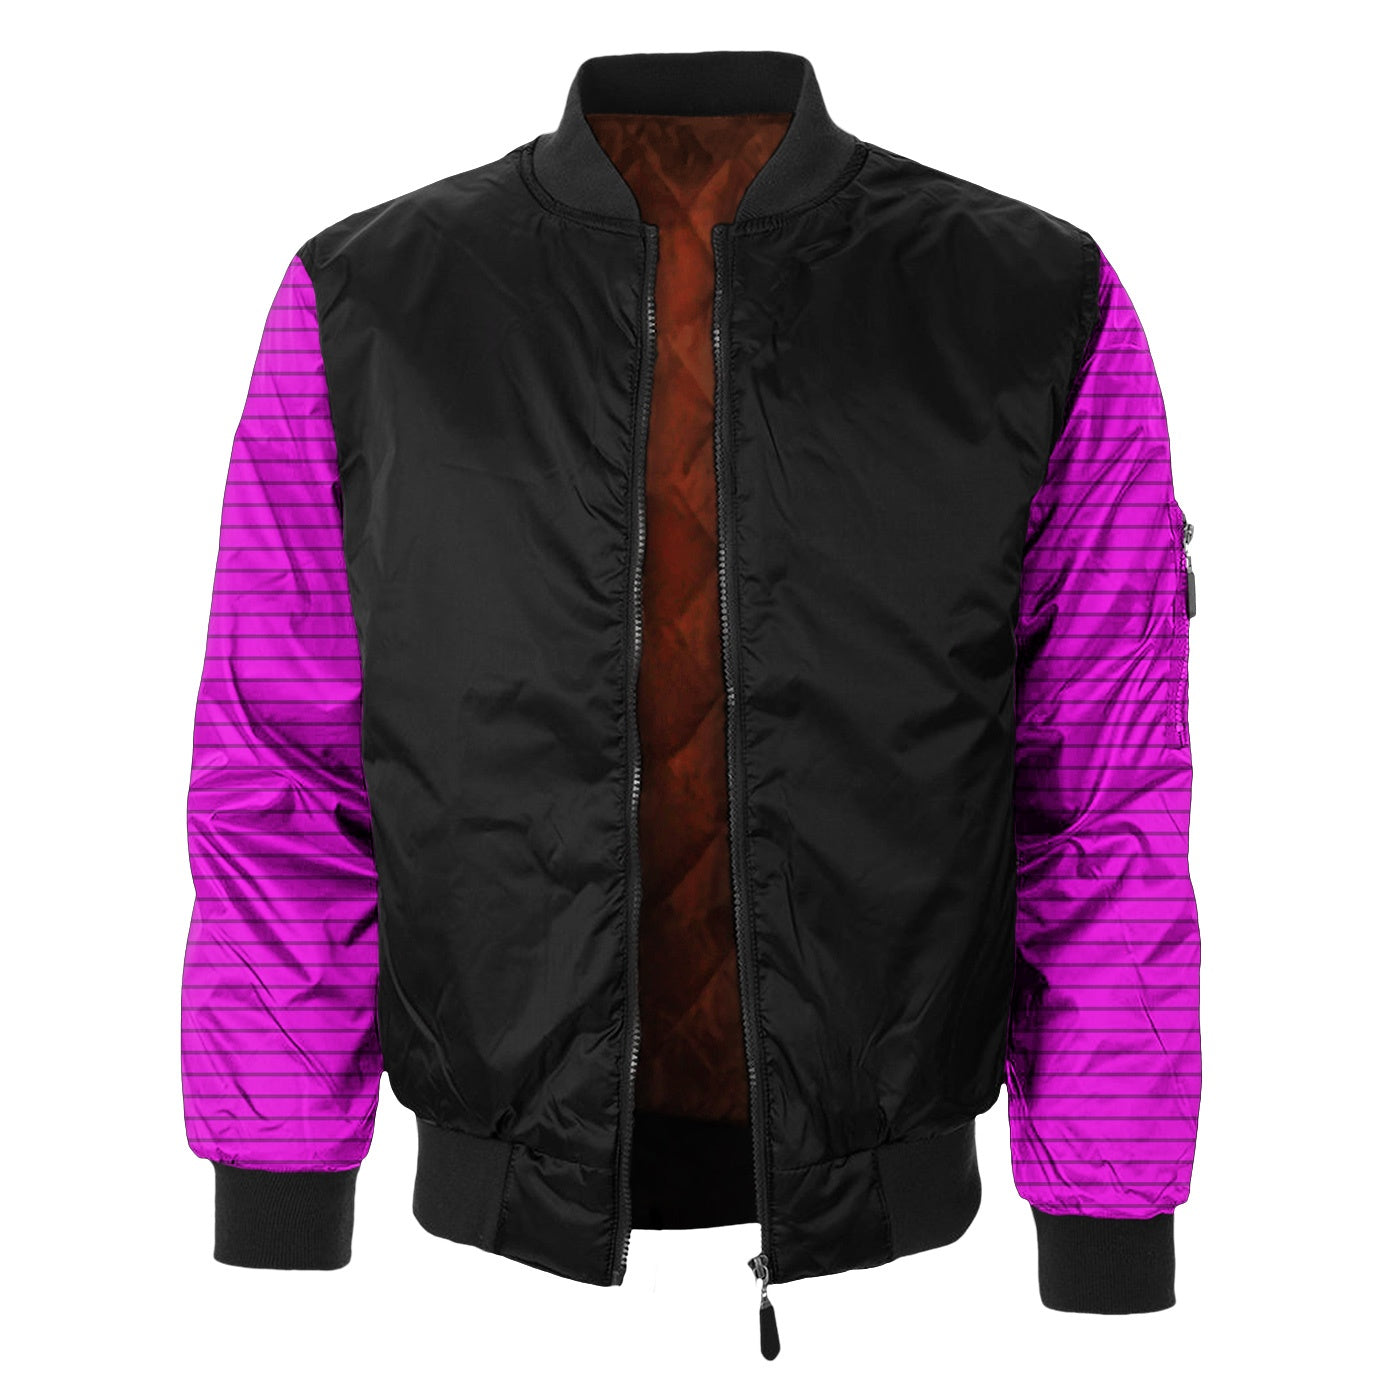 Retro God Bomber Jacket